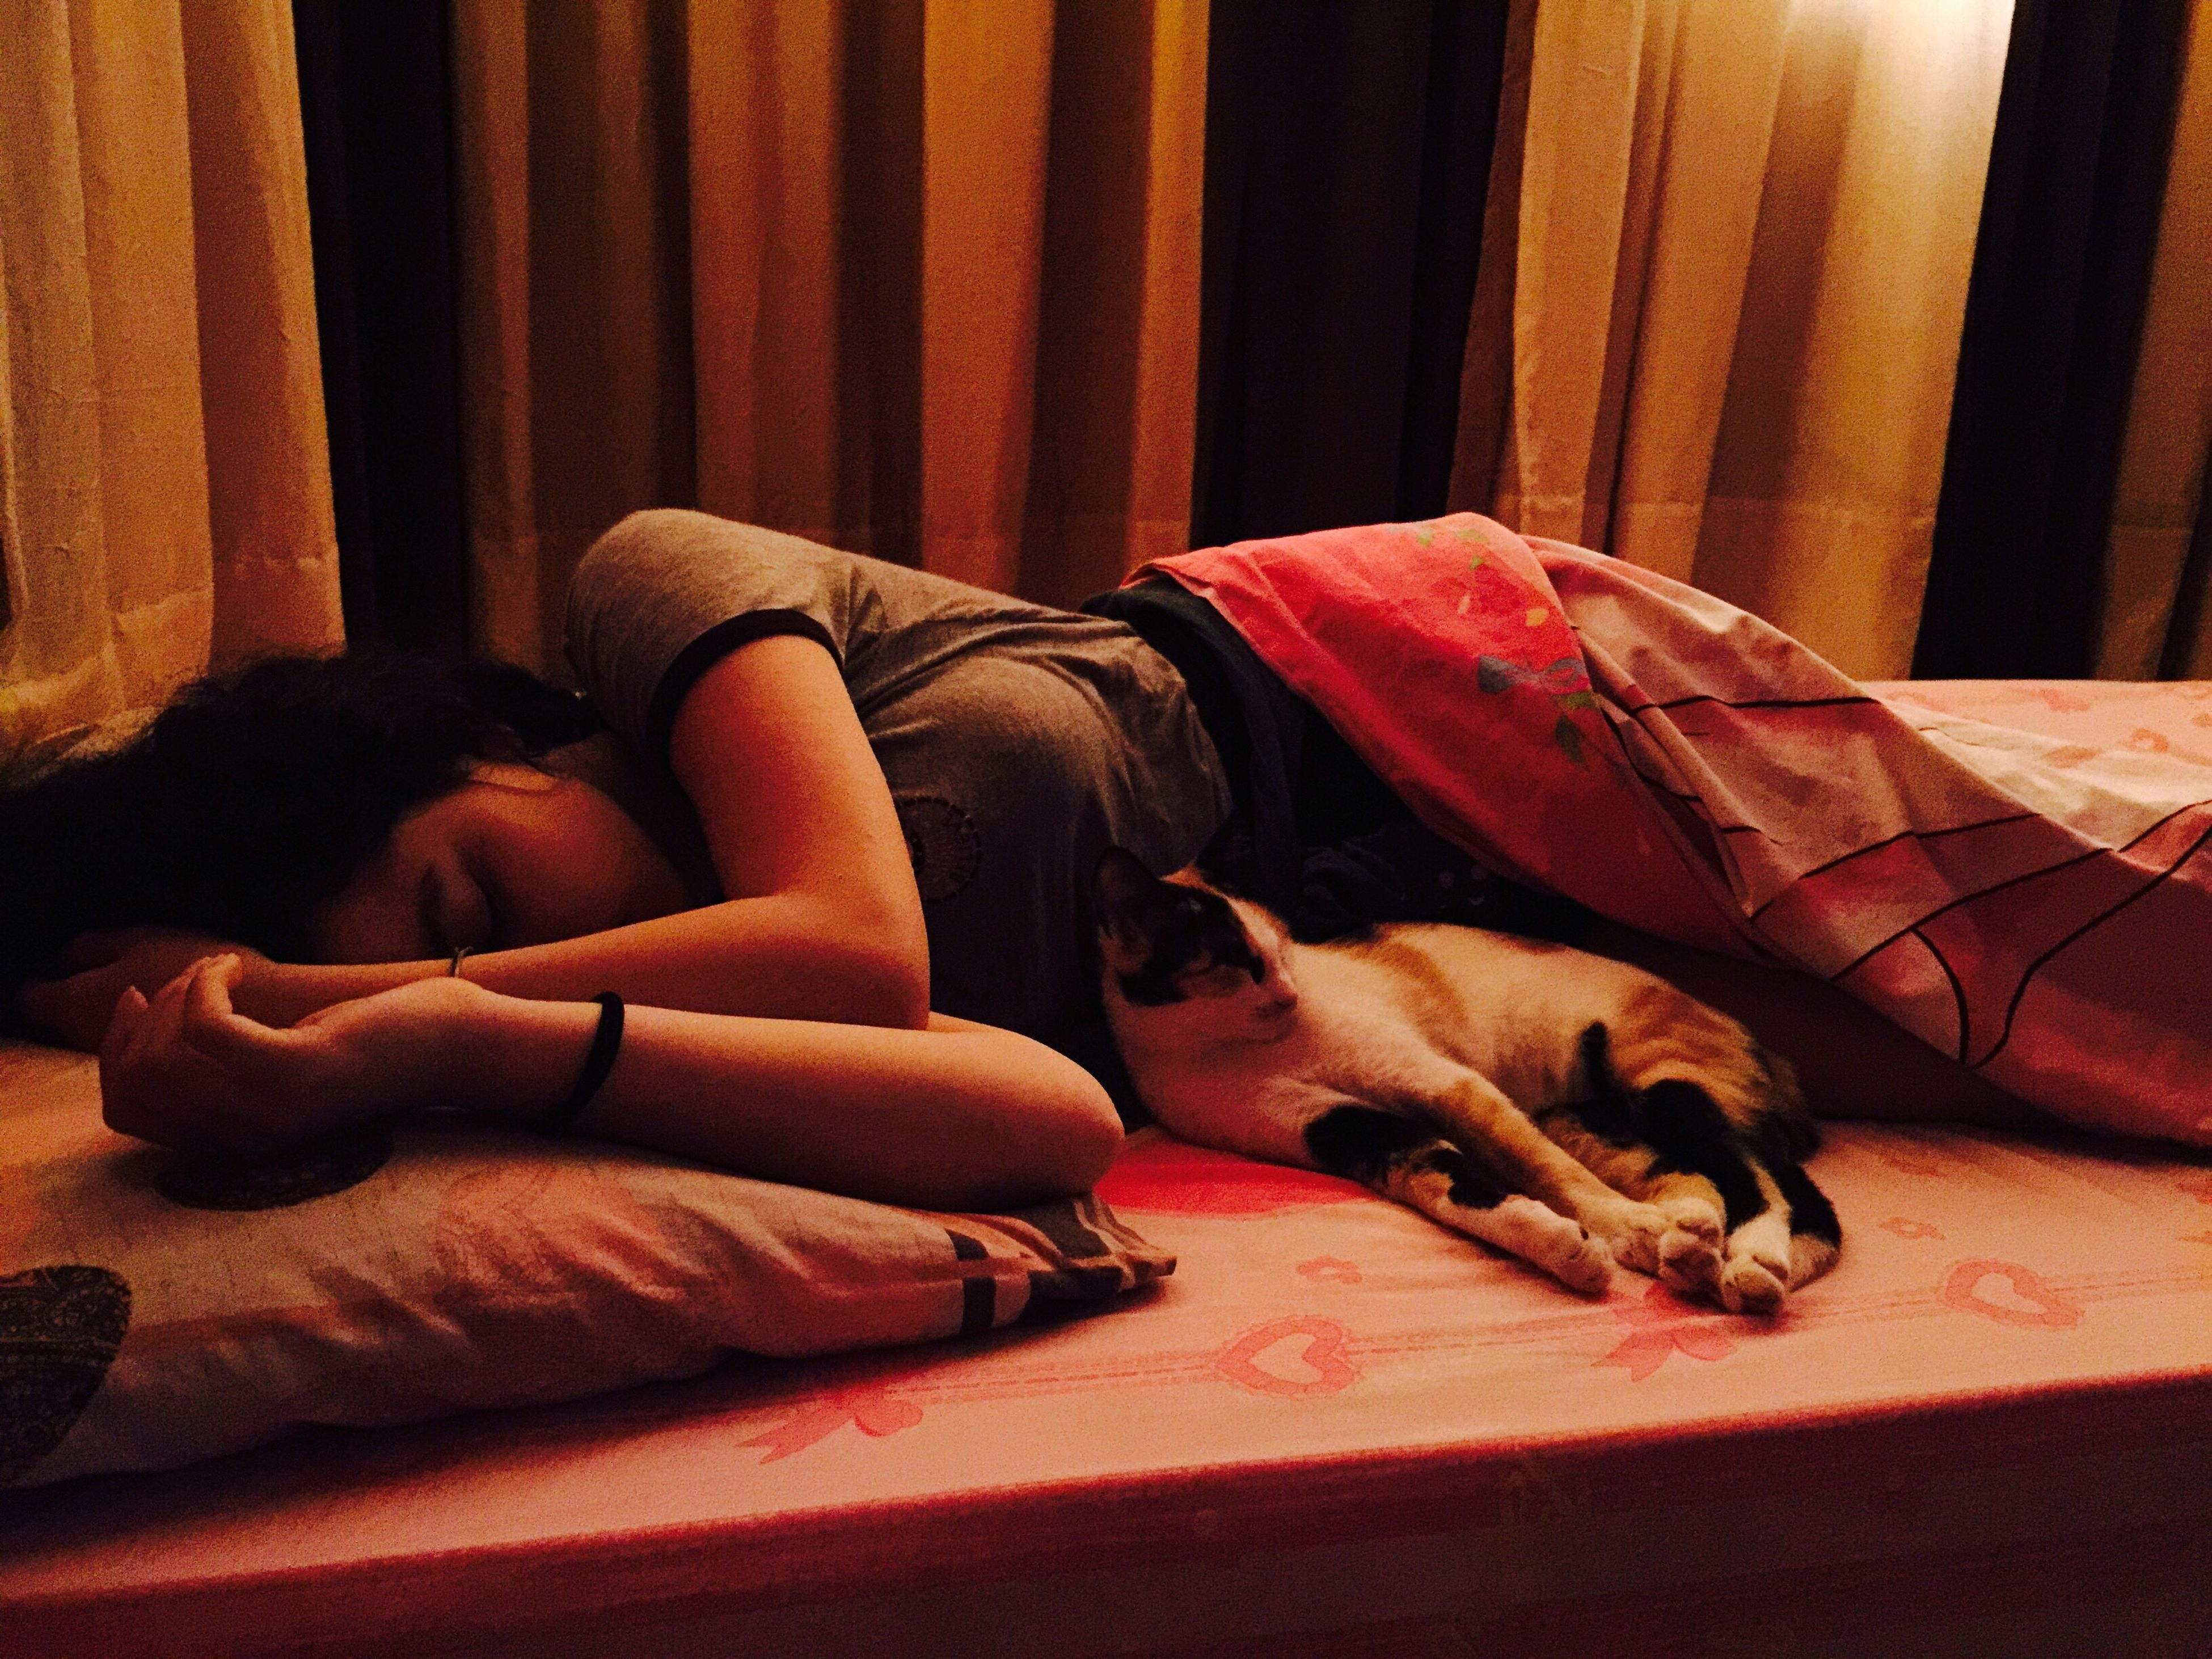 pets, domestic animals, animal themes, mammal, indoors, relaxation, one animal, sleeping, dog, resting, lying down, bed, domestic cat, home interior, sofa, cat, comfortable, blanket, togetherness, eyes closed